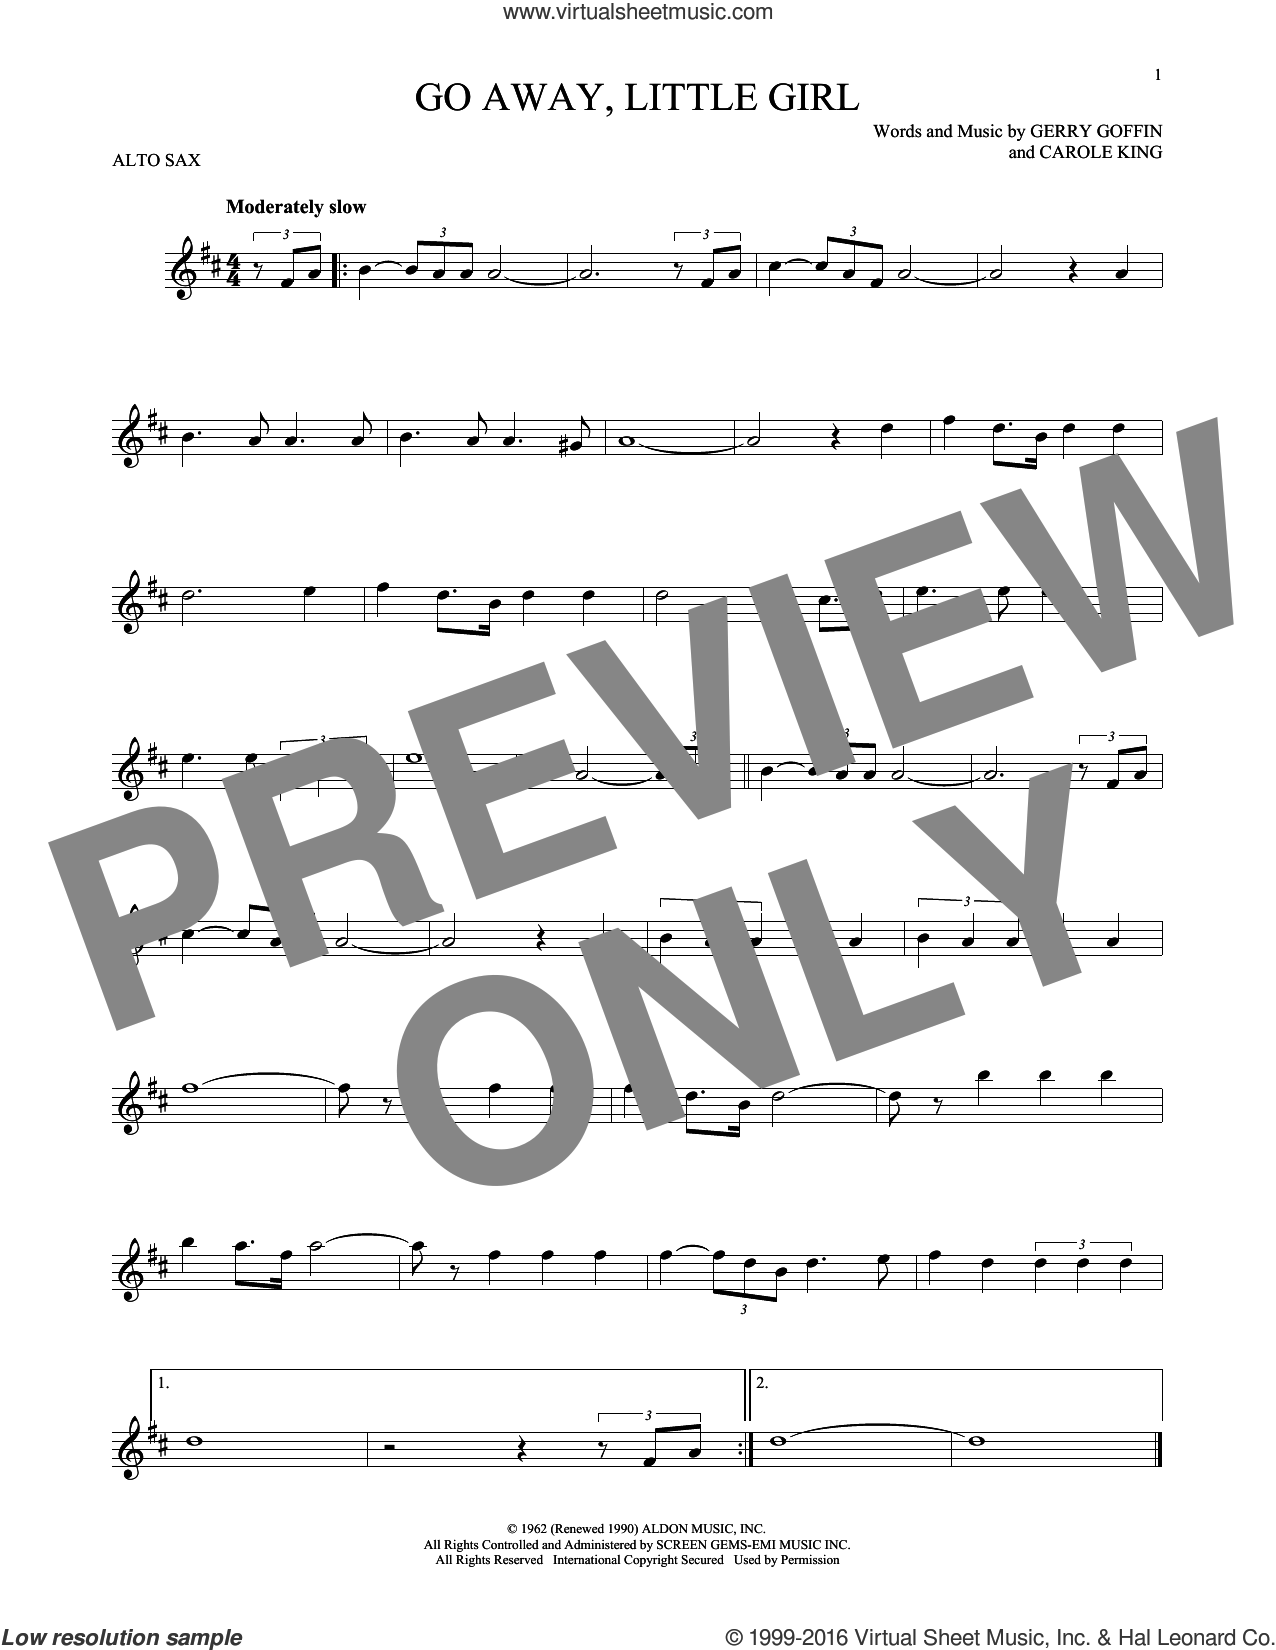 Go Away, Little Girl sheet music for alto saxophone solo by Donny Osmond, Steve Lawrence, Carole King and Gerry Goffin, intermediate skill level